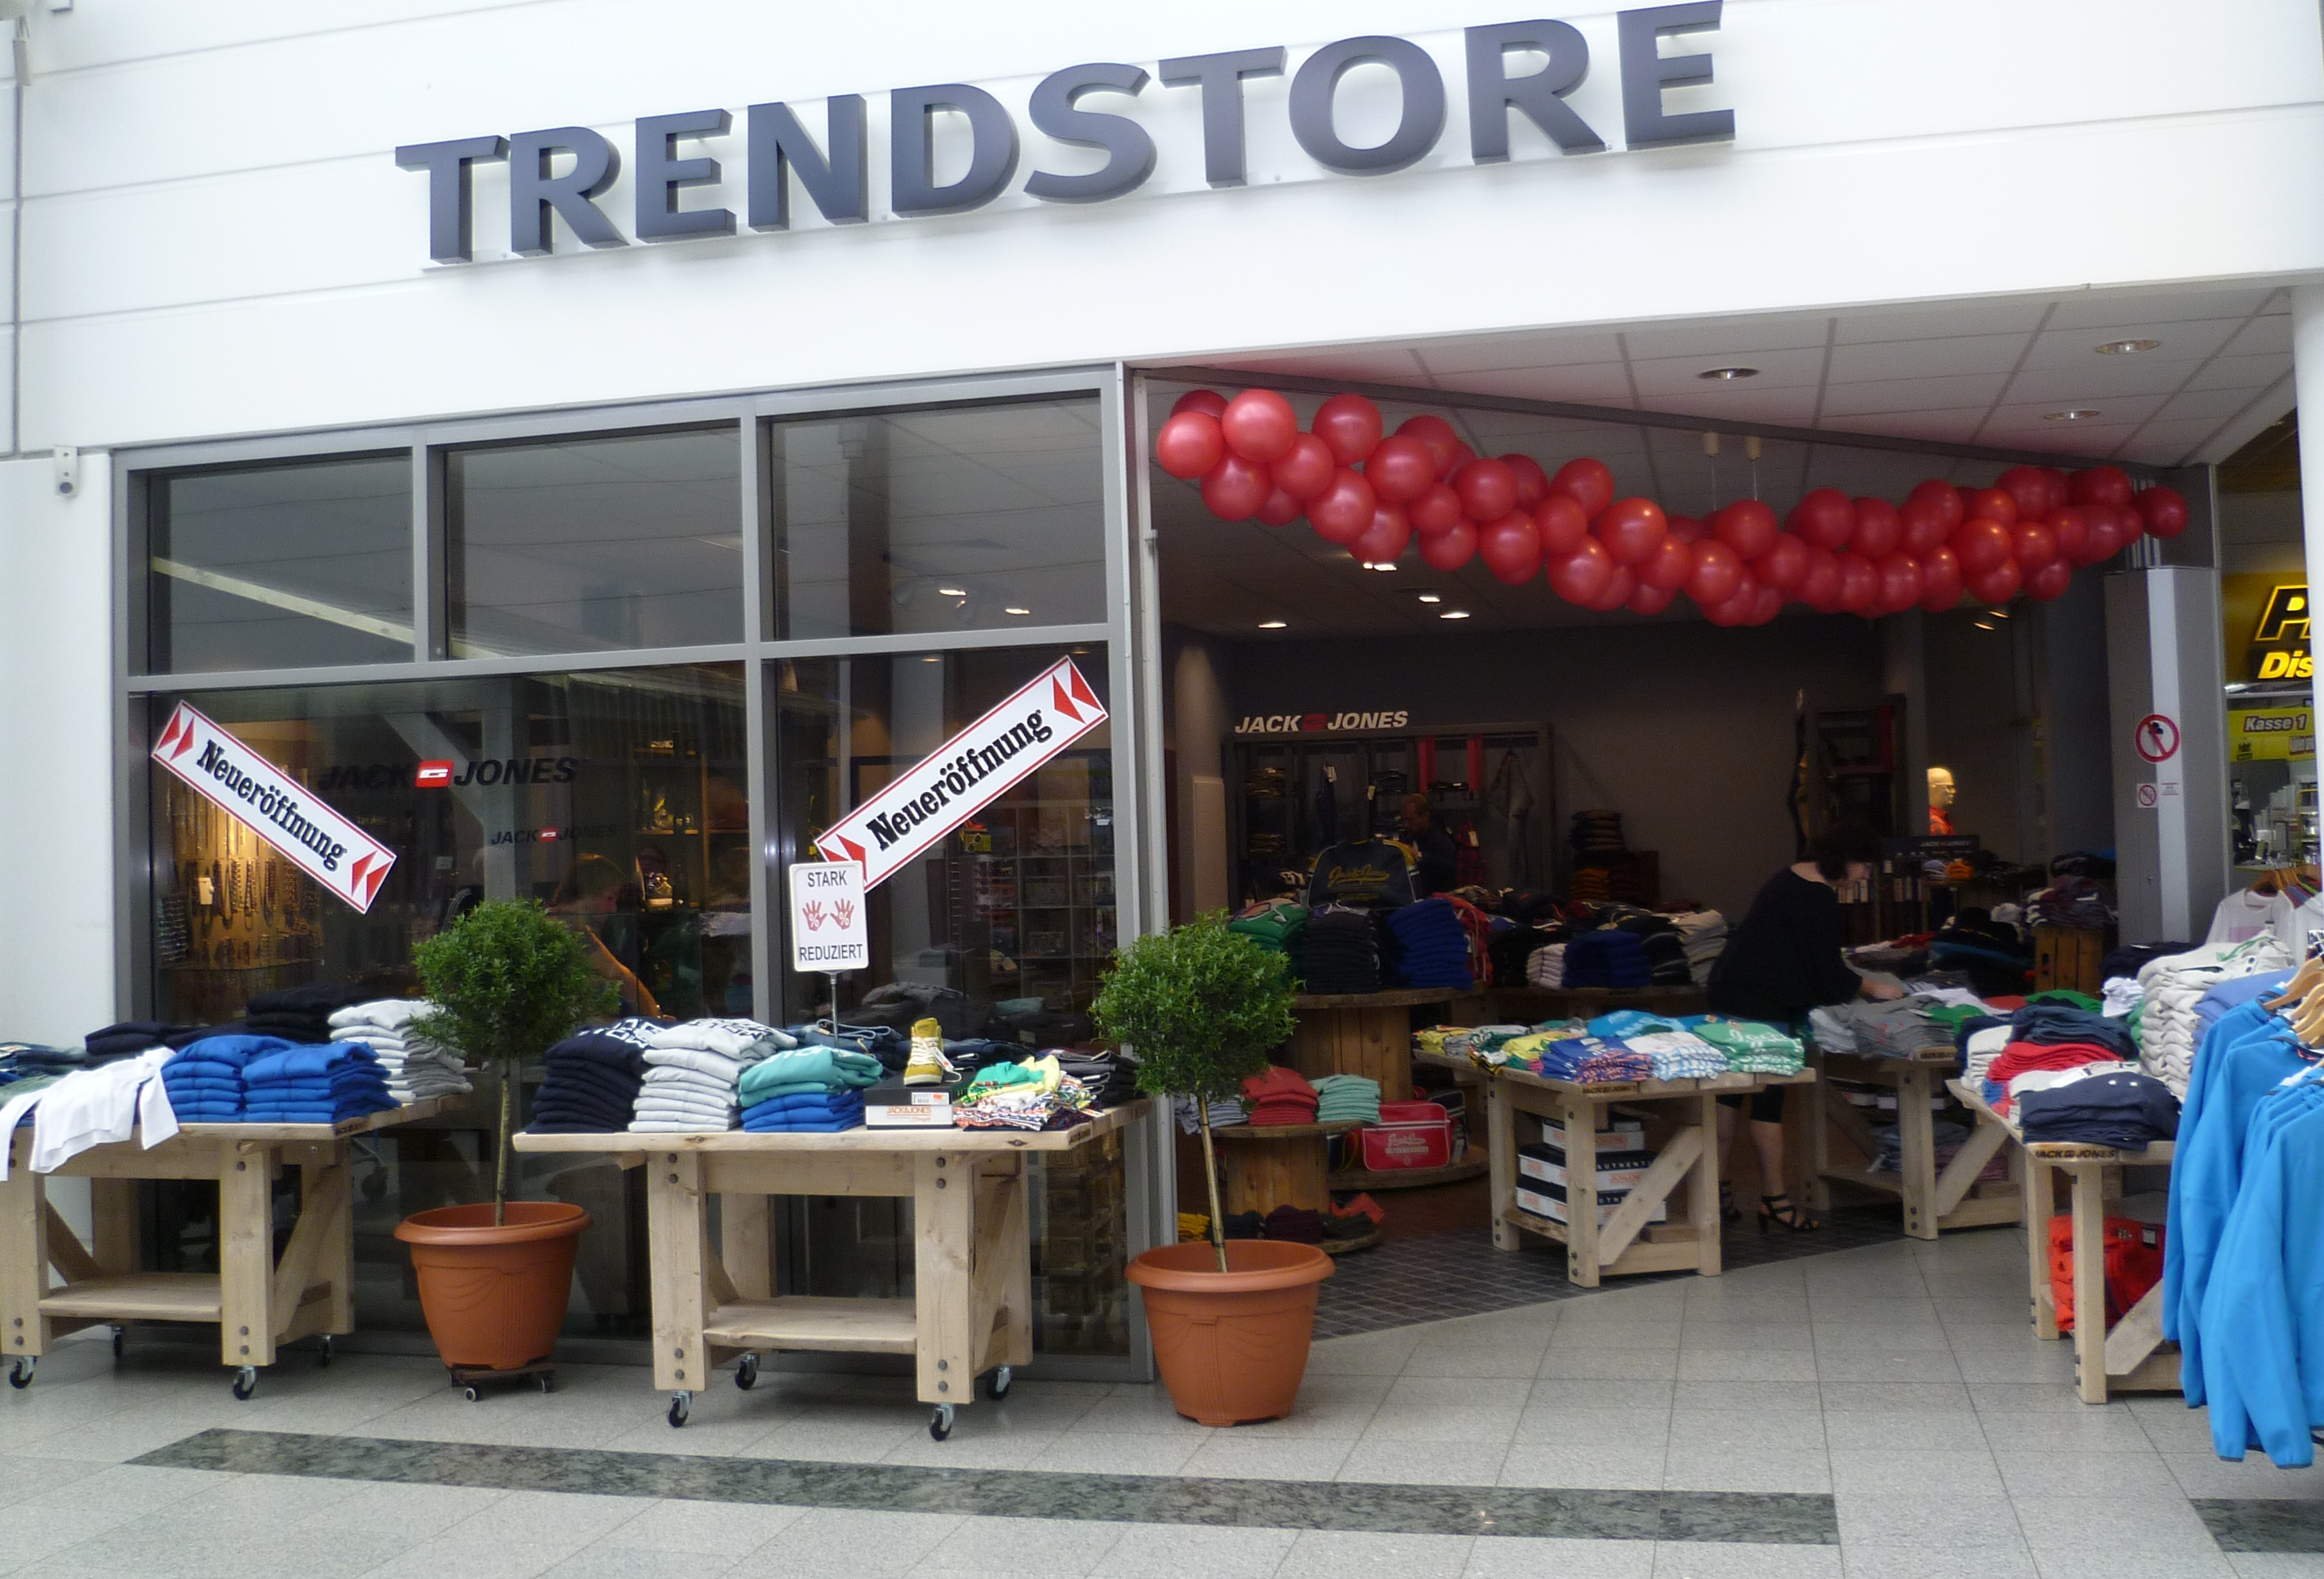 new style low price uk store Eiderpark: Trendstore